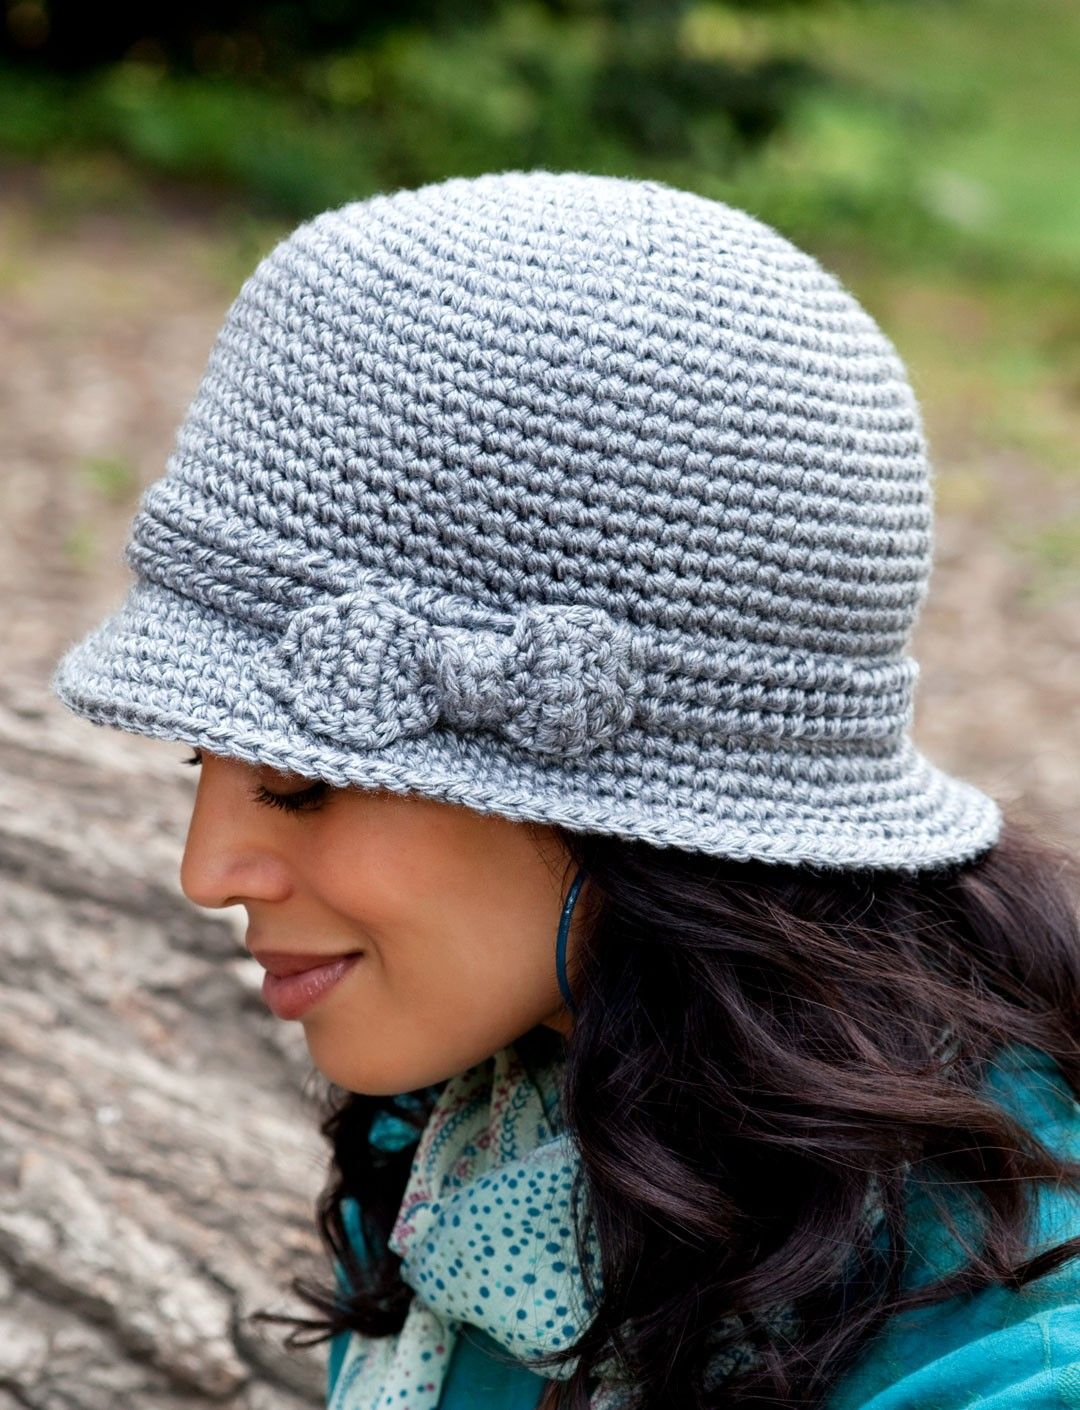 Yarnspirations.com - Caron Elegant Hat - Patterns | Yarnspirations ...